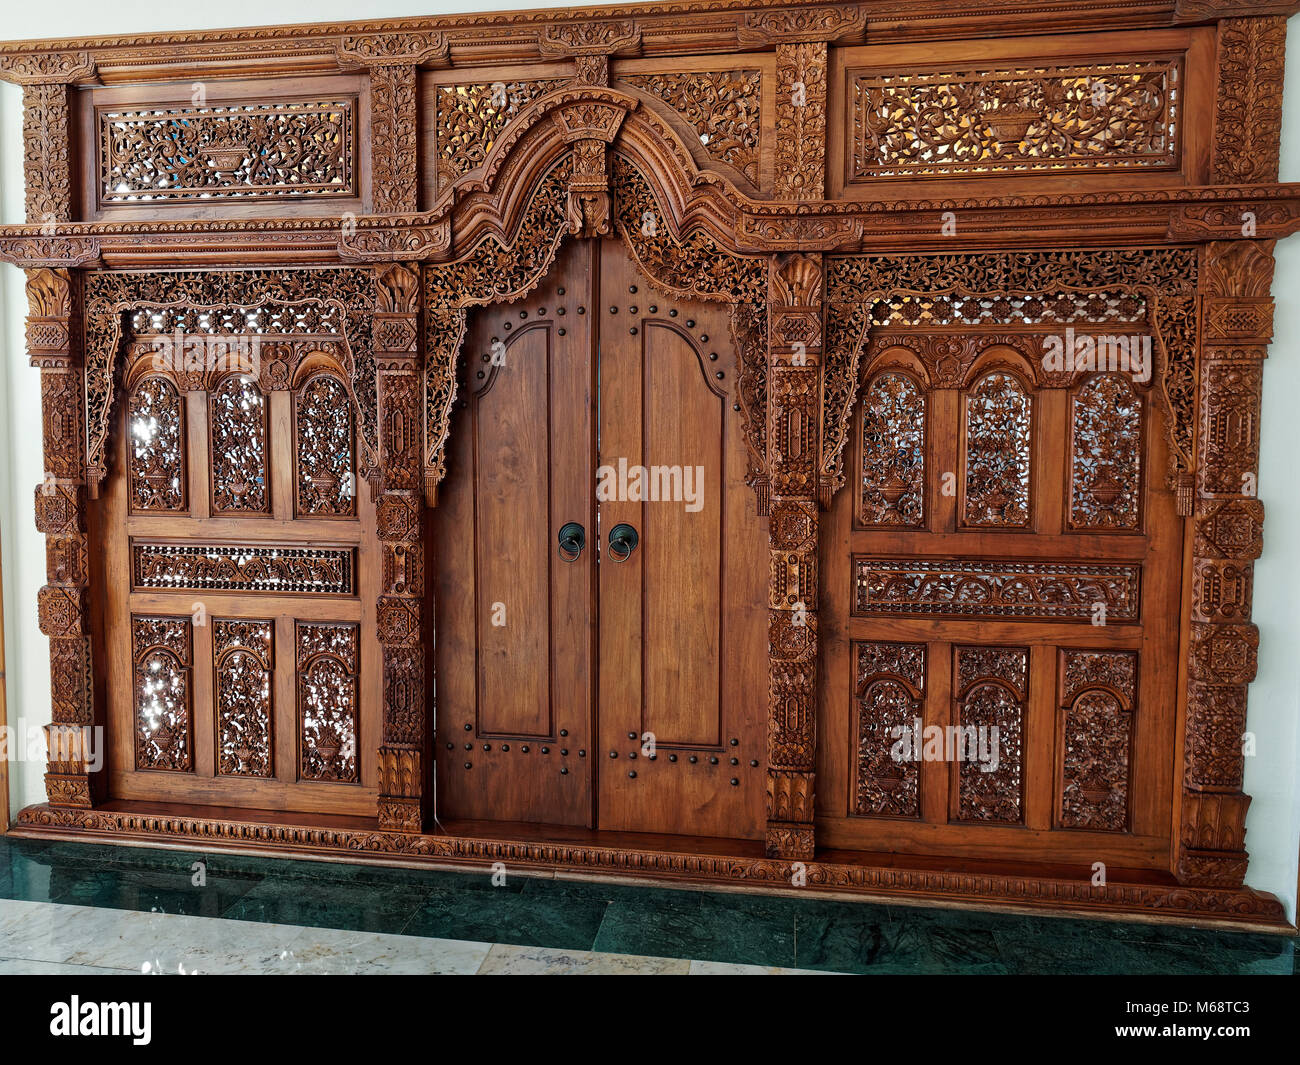 Ornamental Doors Sandos Papagayo Playa Blanca Lanzarote. - Stock Image & Decorative Doors Stock Photos \u0026 Decorative Doors Stock Images - Alamy